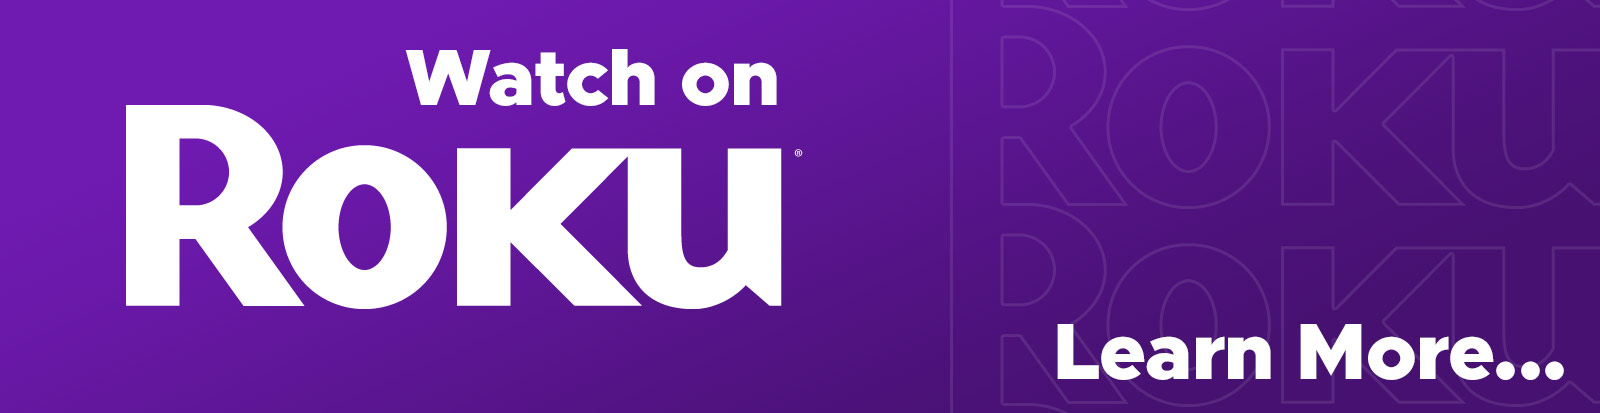 Roku Call to Action